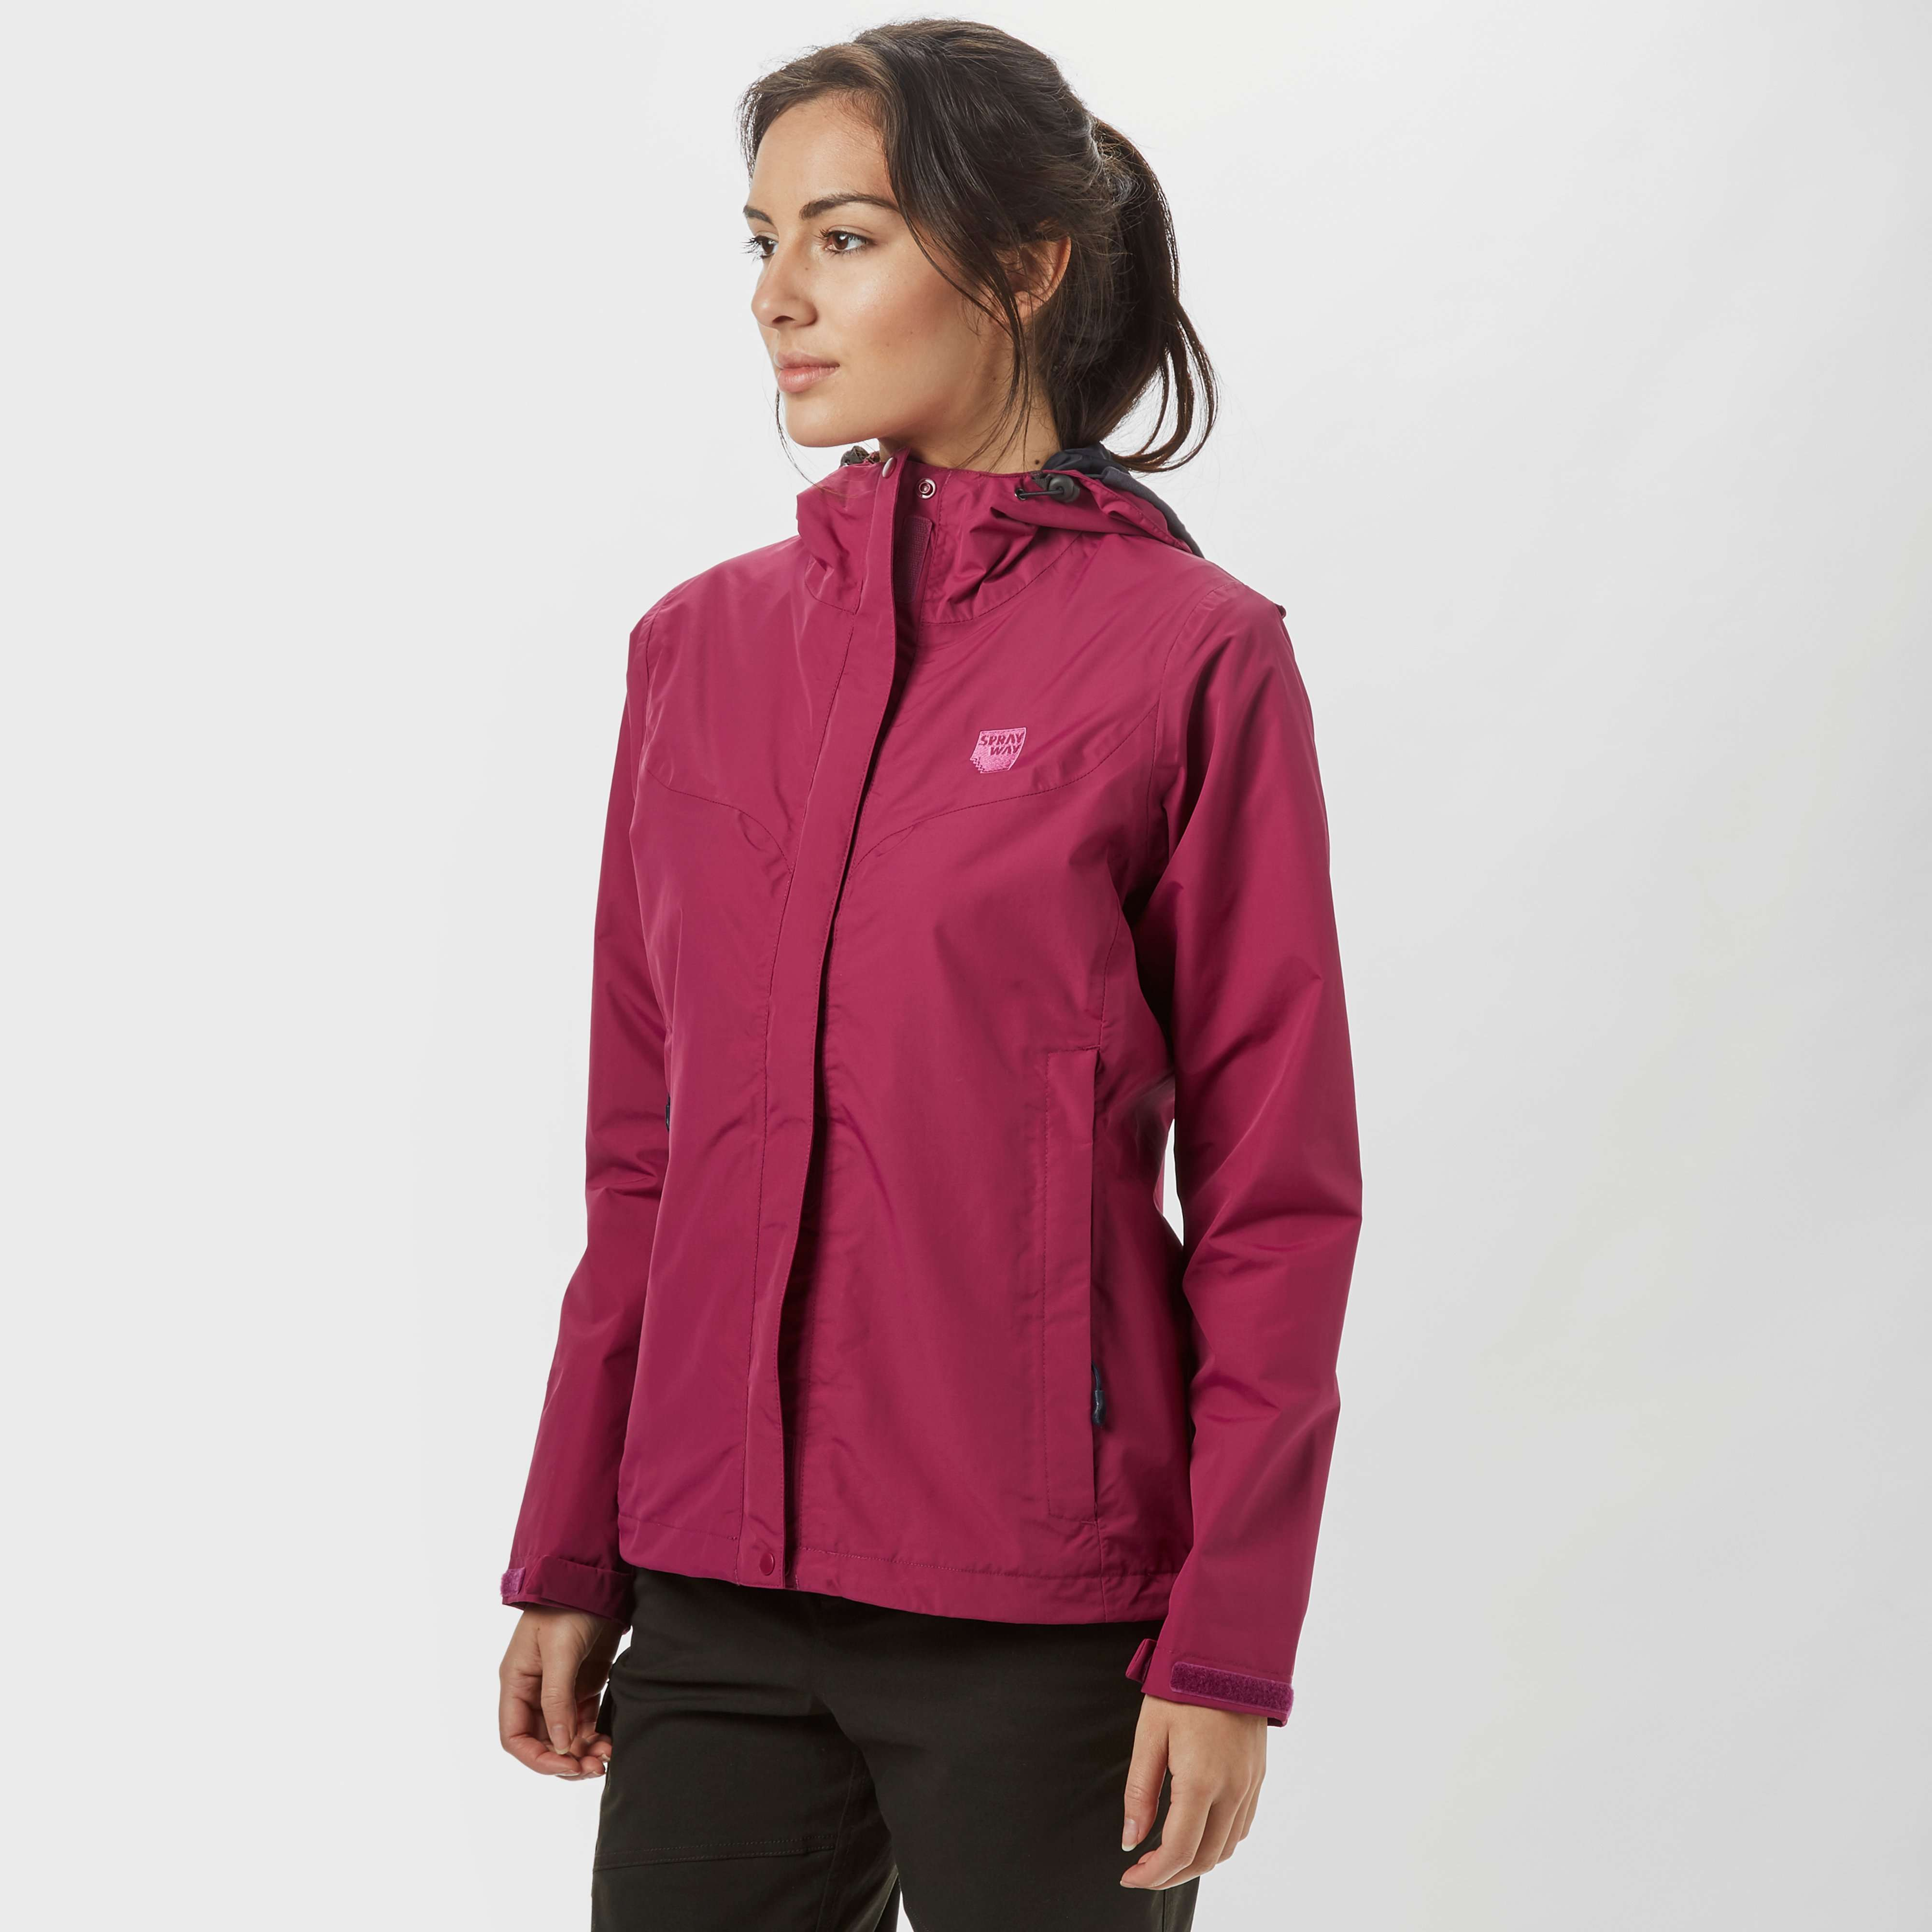 SPRAYWAY Women's Sierra Waterproof Jacket